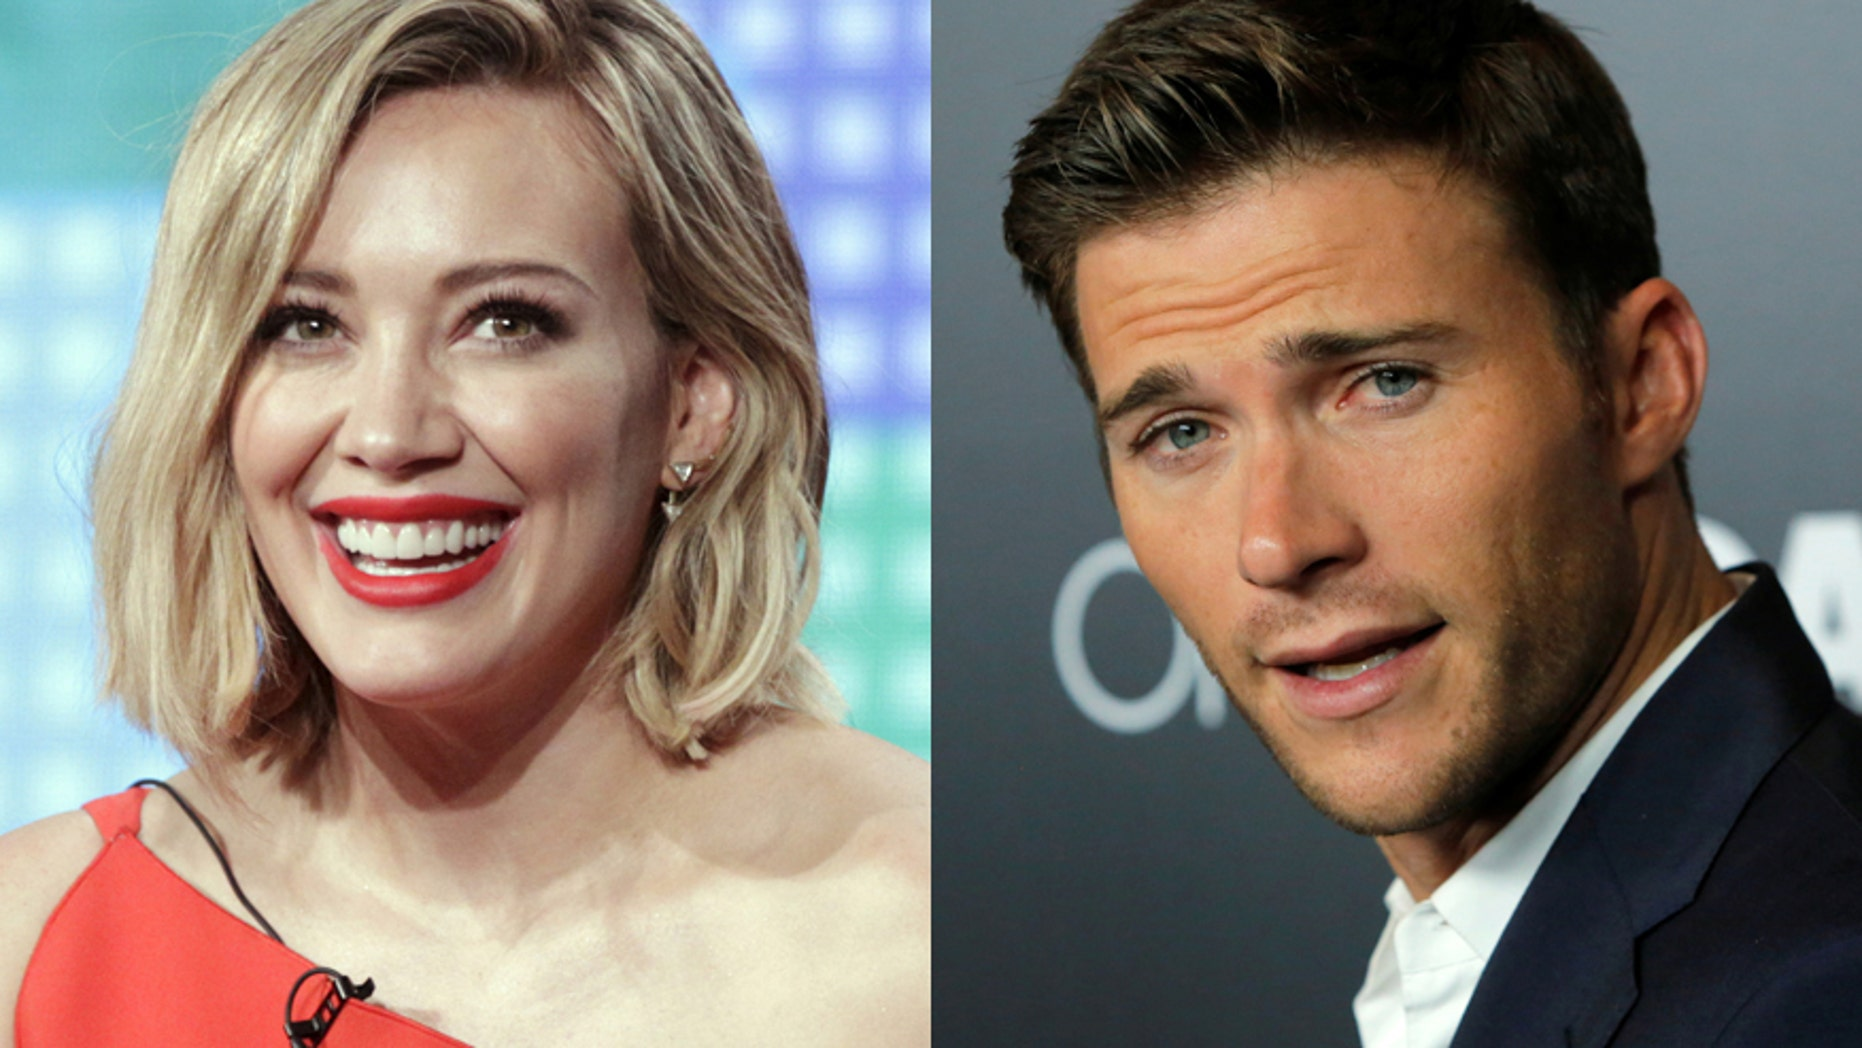 Hilary Duff (left) and Scott Eastwood.